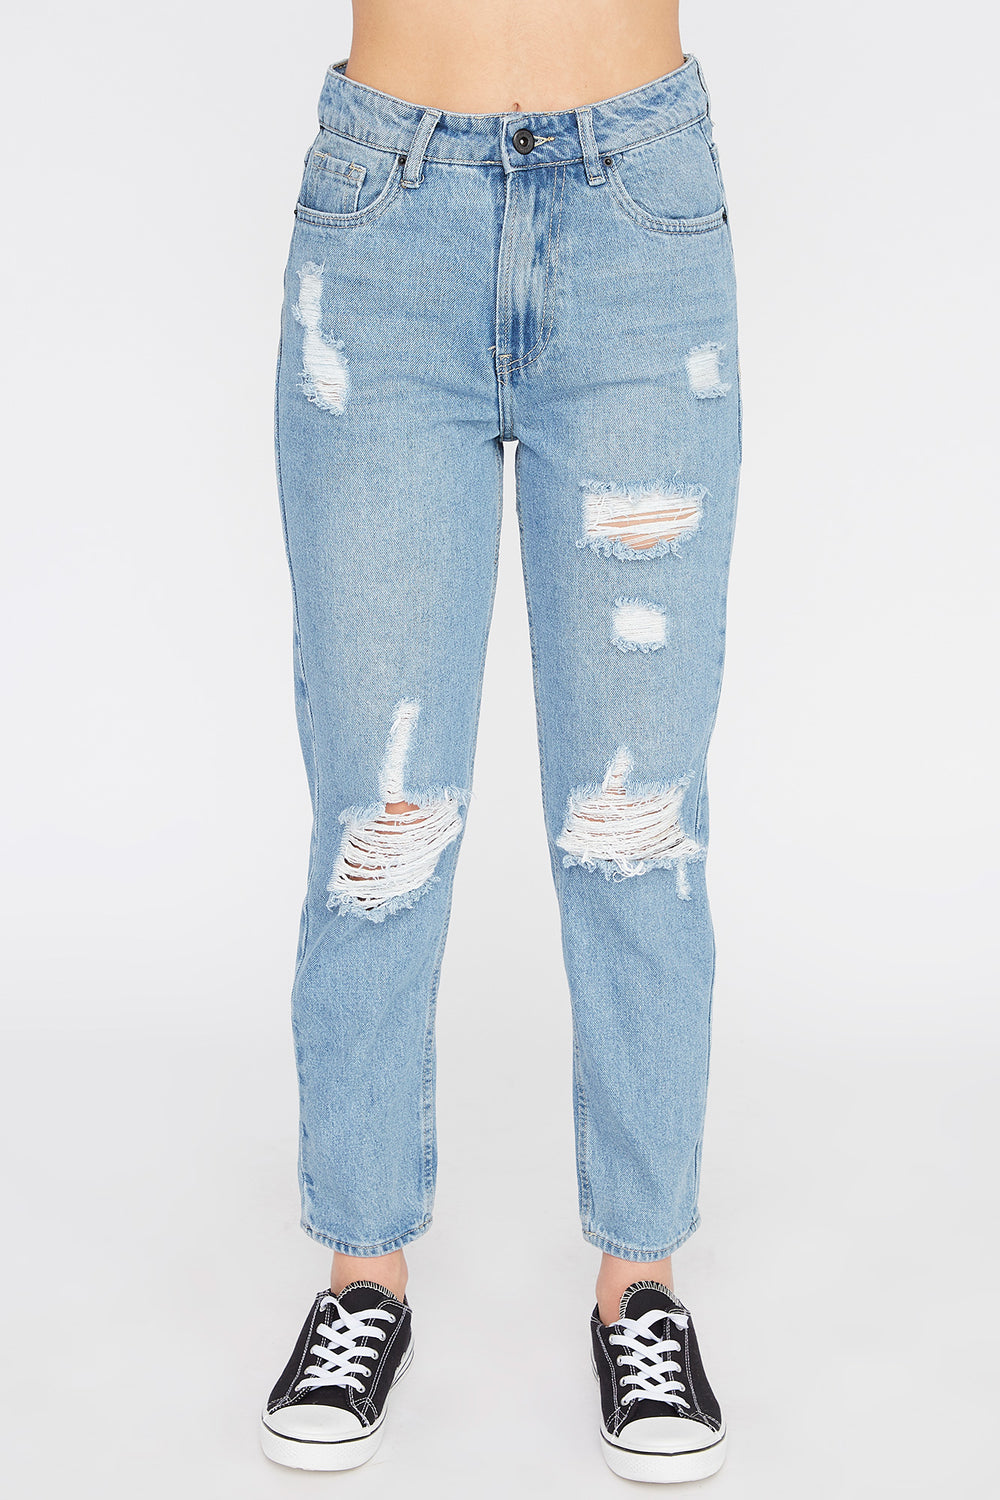 Zoo York Womens Distressed Light Wash Mom Jeans Medium Blue